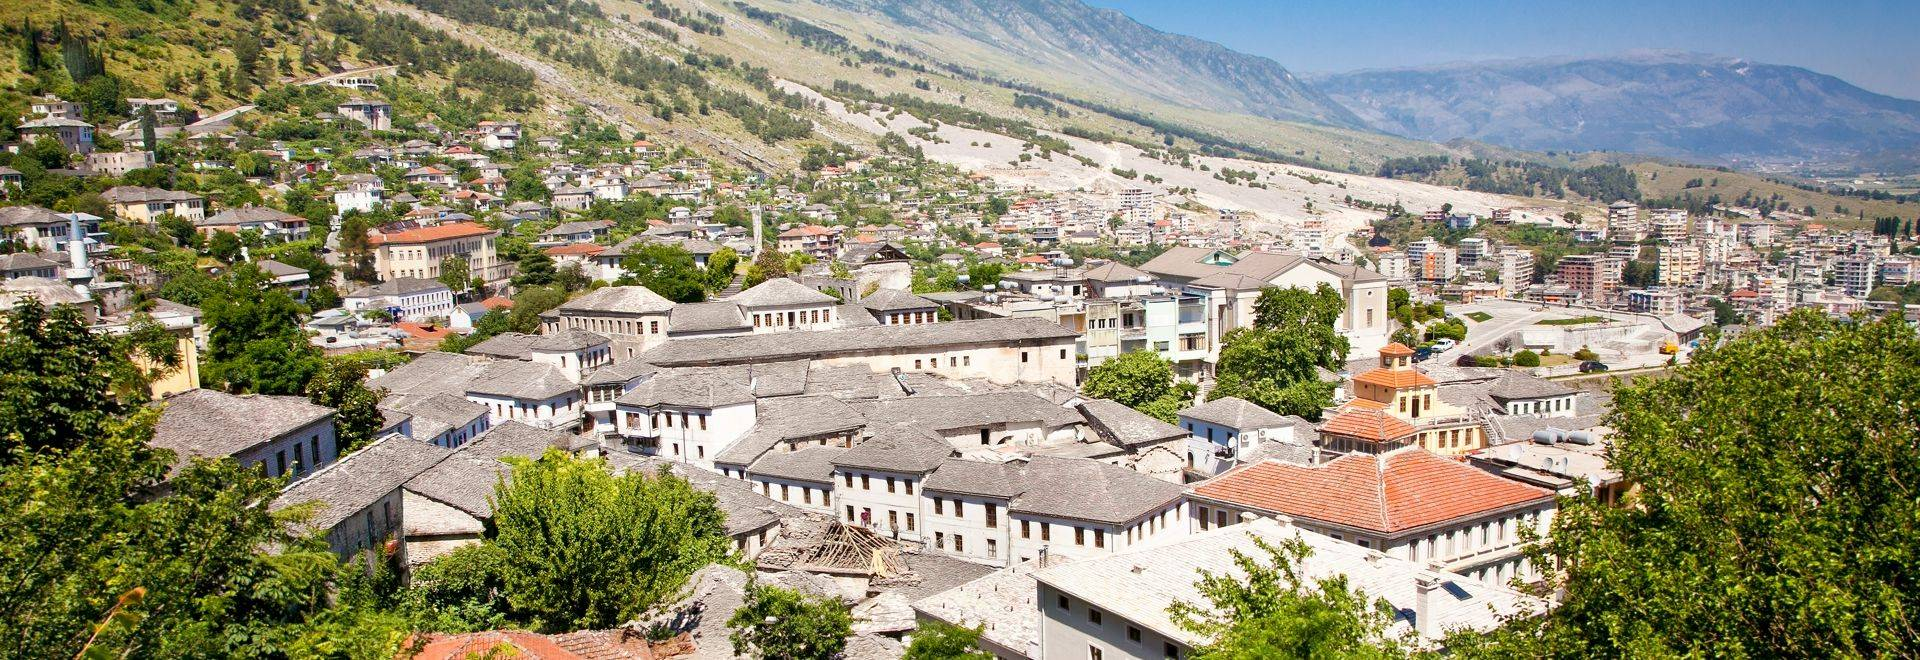 Panoramic view on Traditional albanian house in Gjirokaster, Albania.